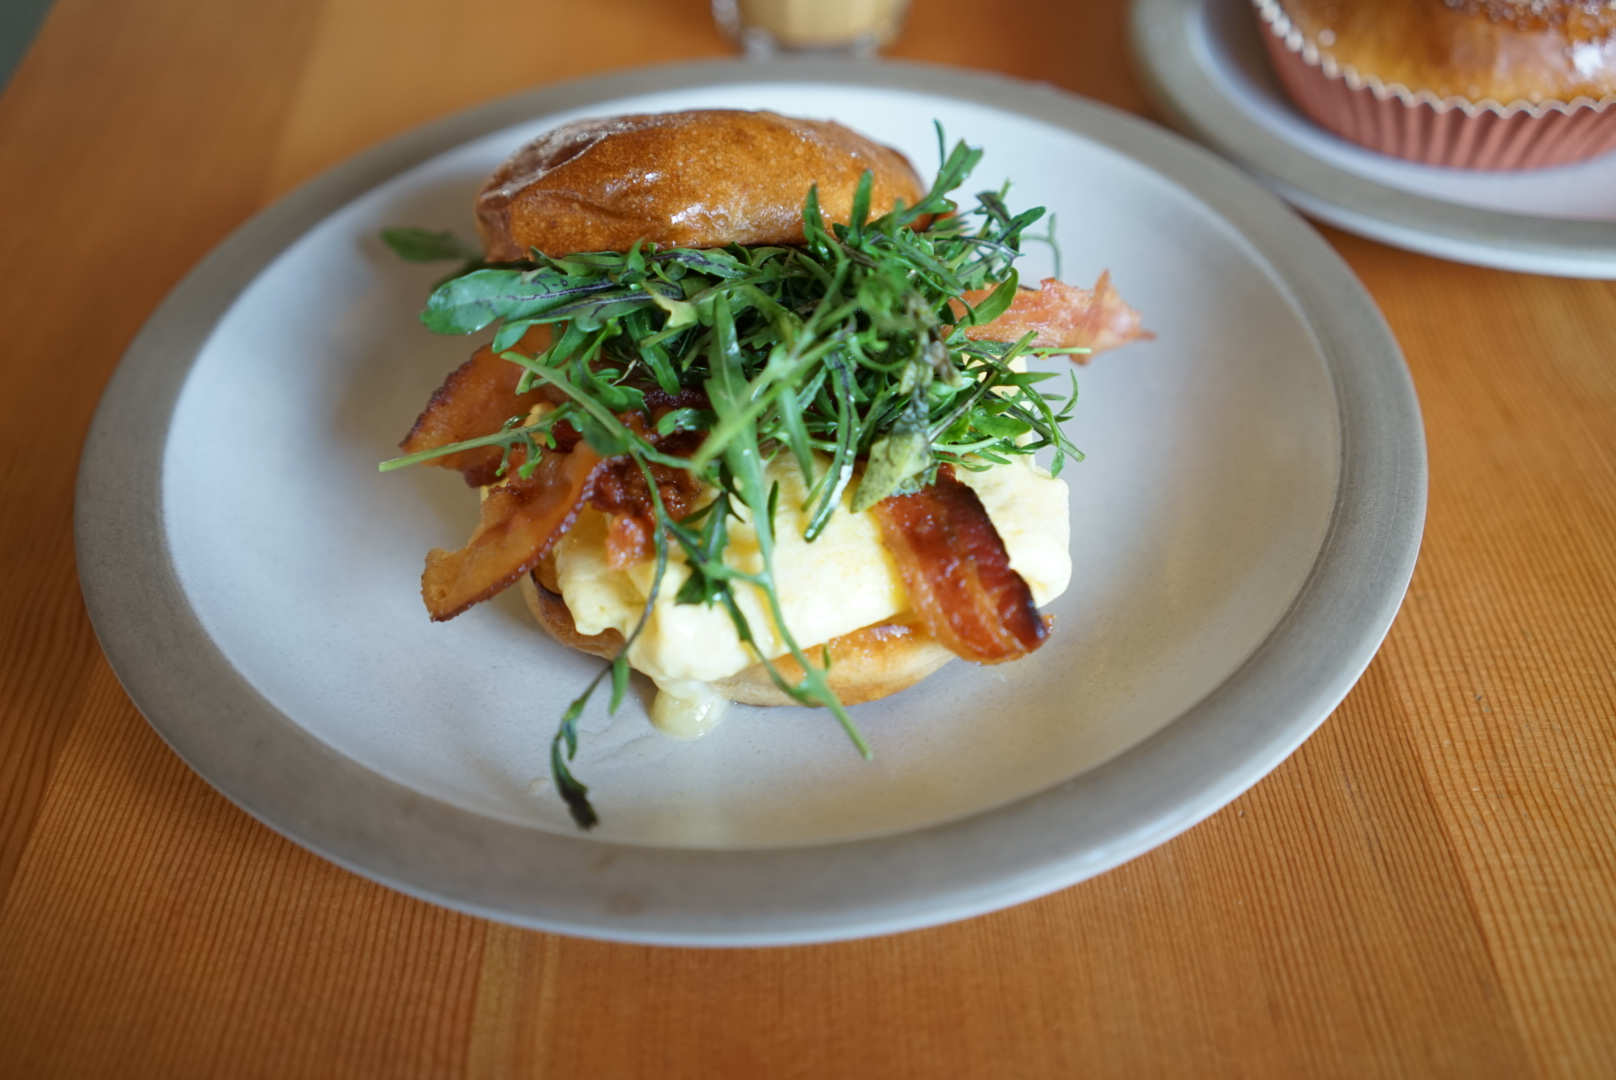 Must visit in San Francisco: the Mission's Tartine Manufactory. Order an egg breakfast sandwich.